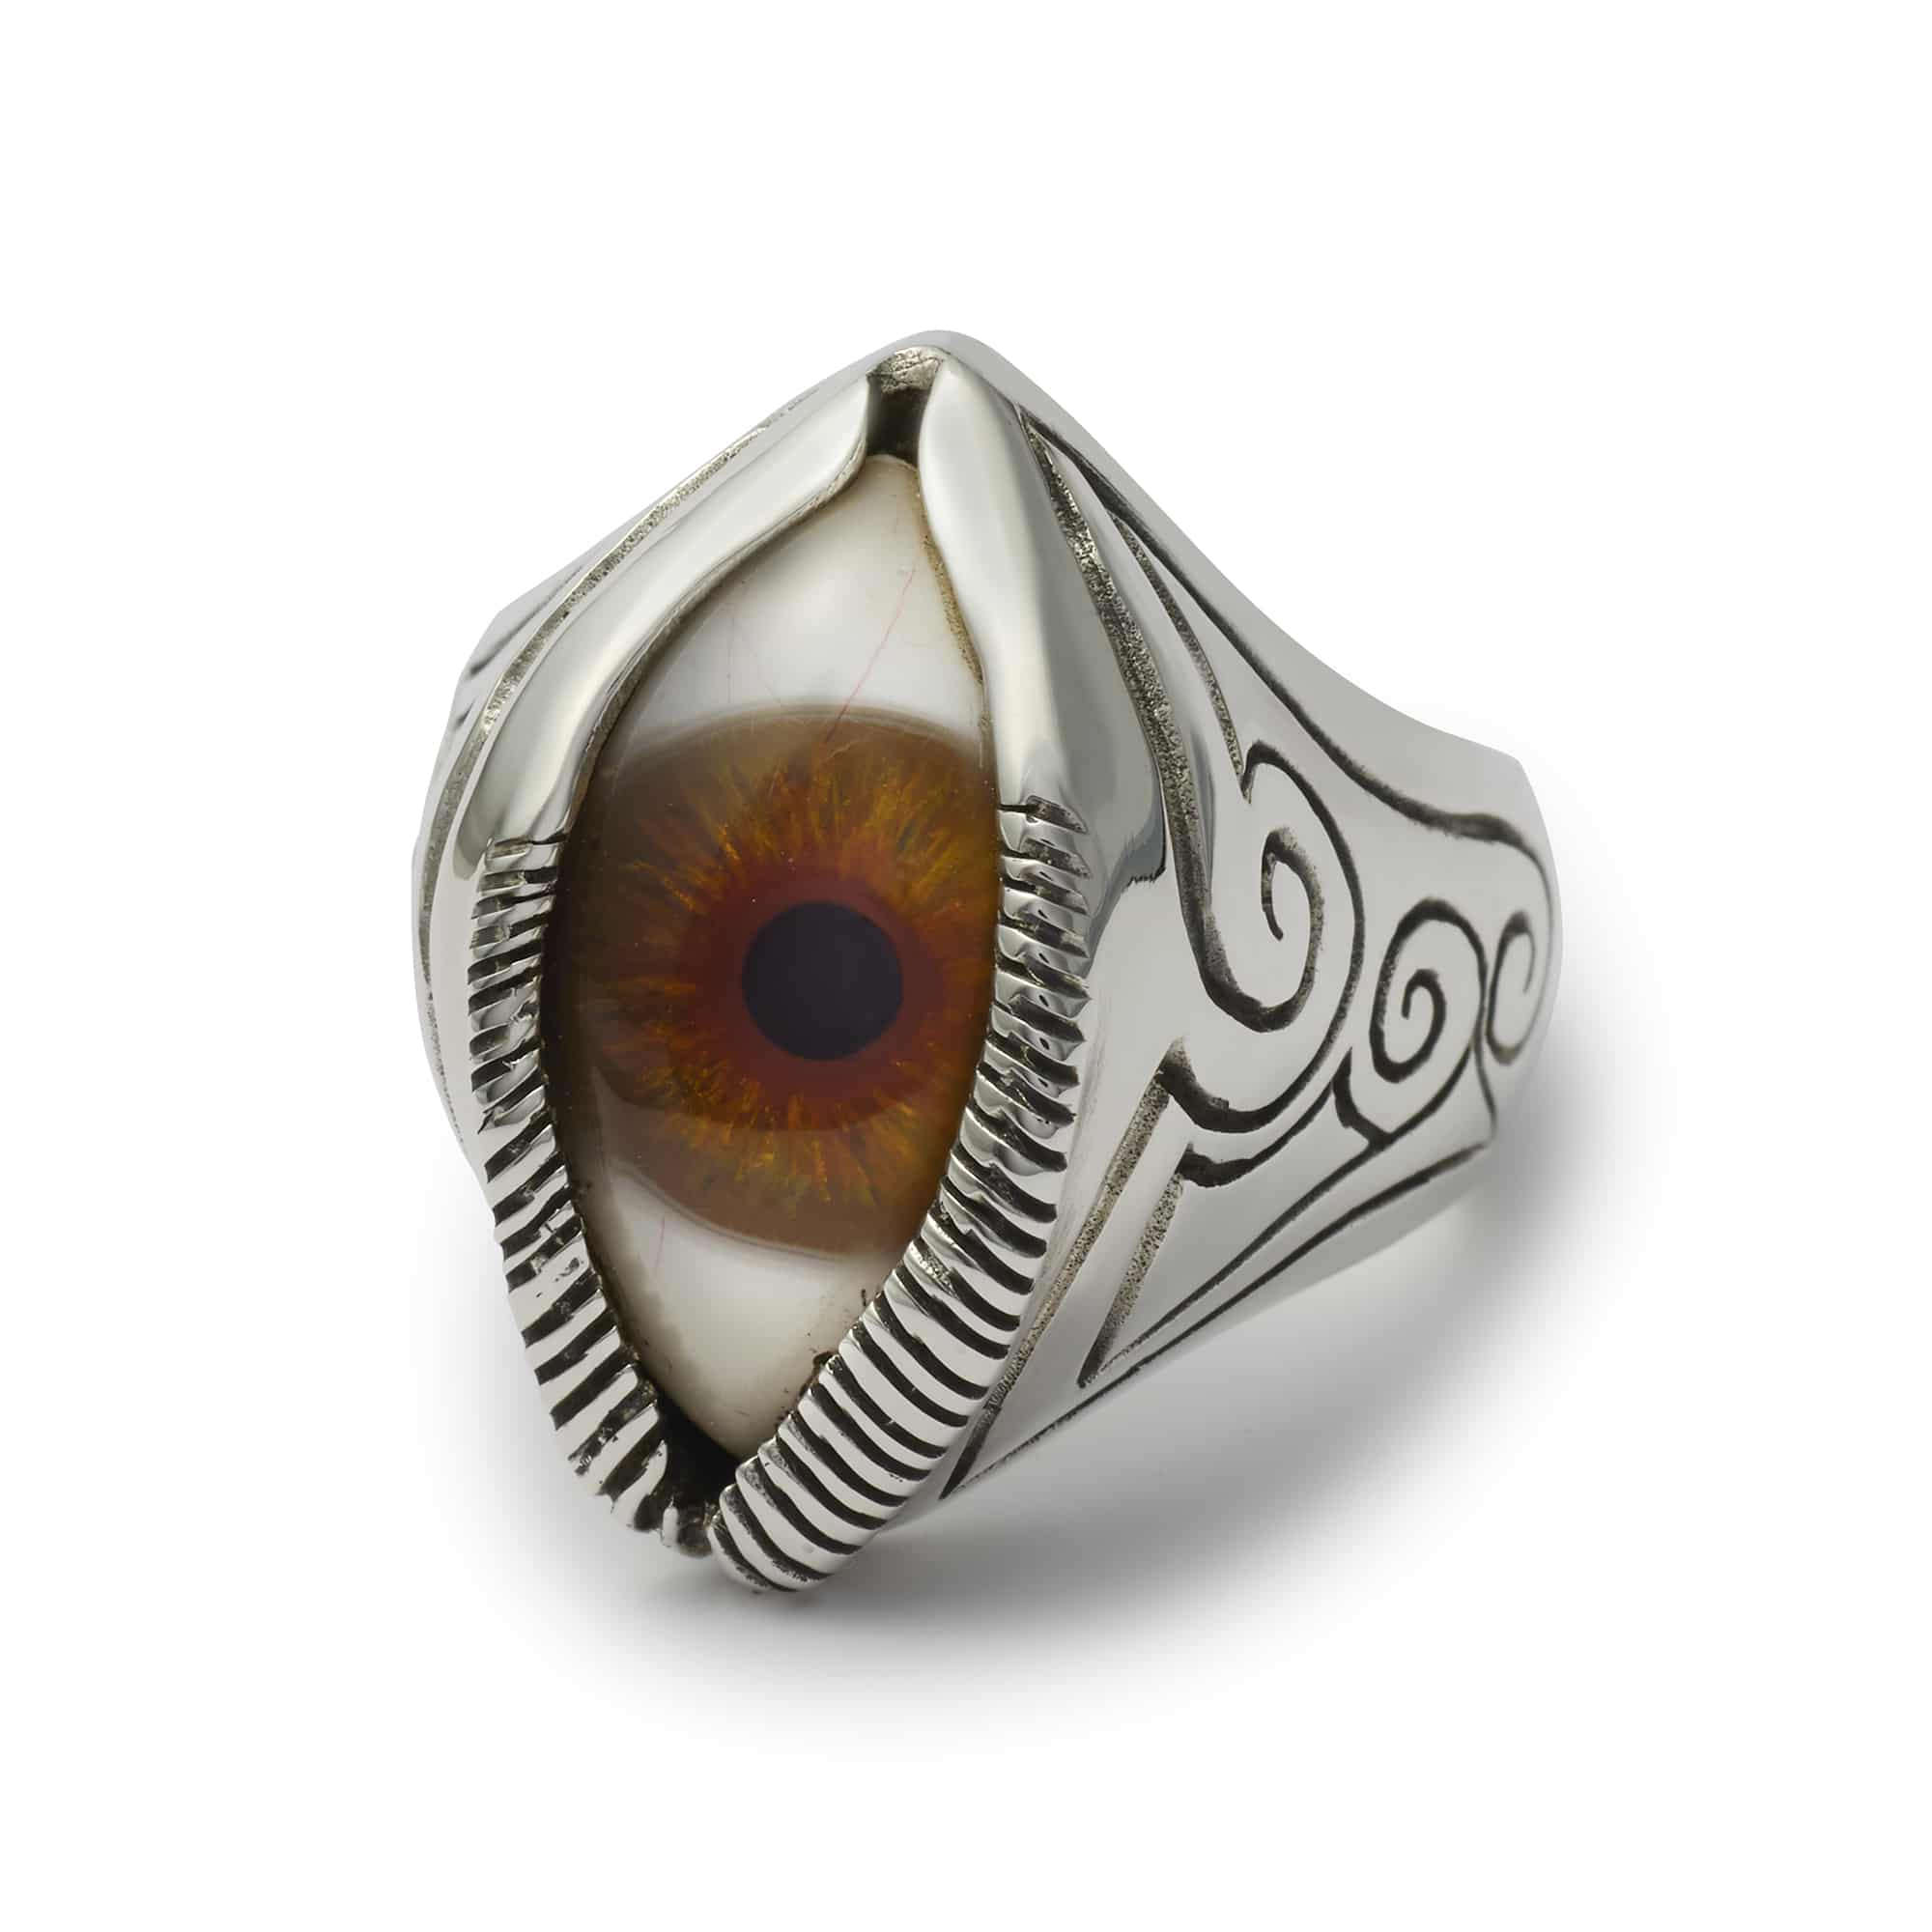 moonstone diamond products pm at screen and shot hollowell ring logan new third rings jewelry eye